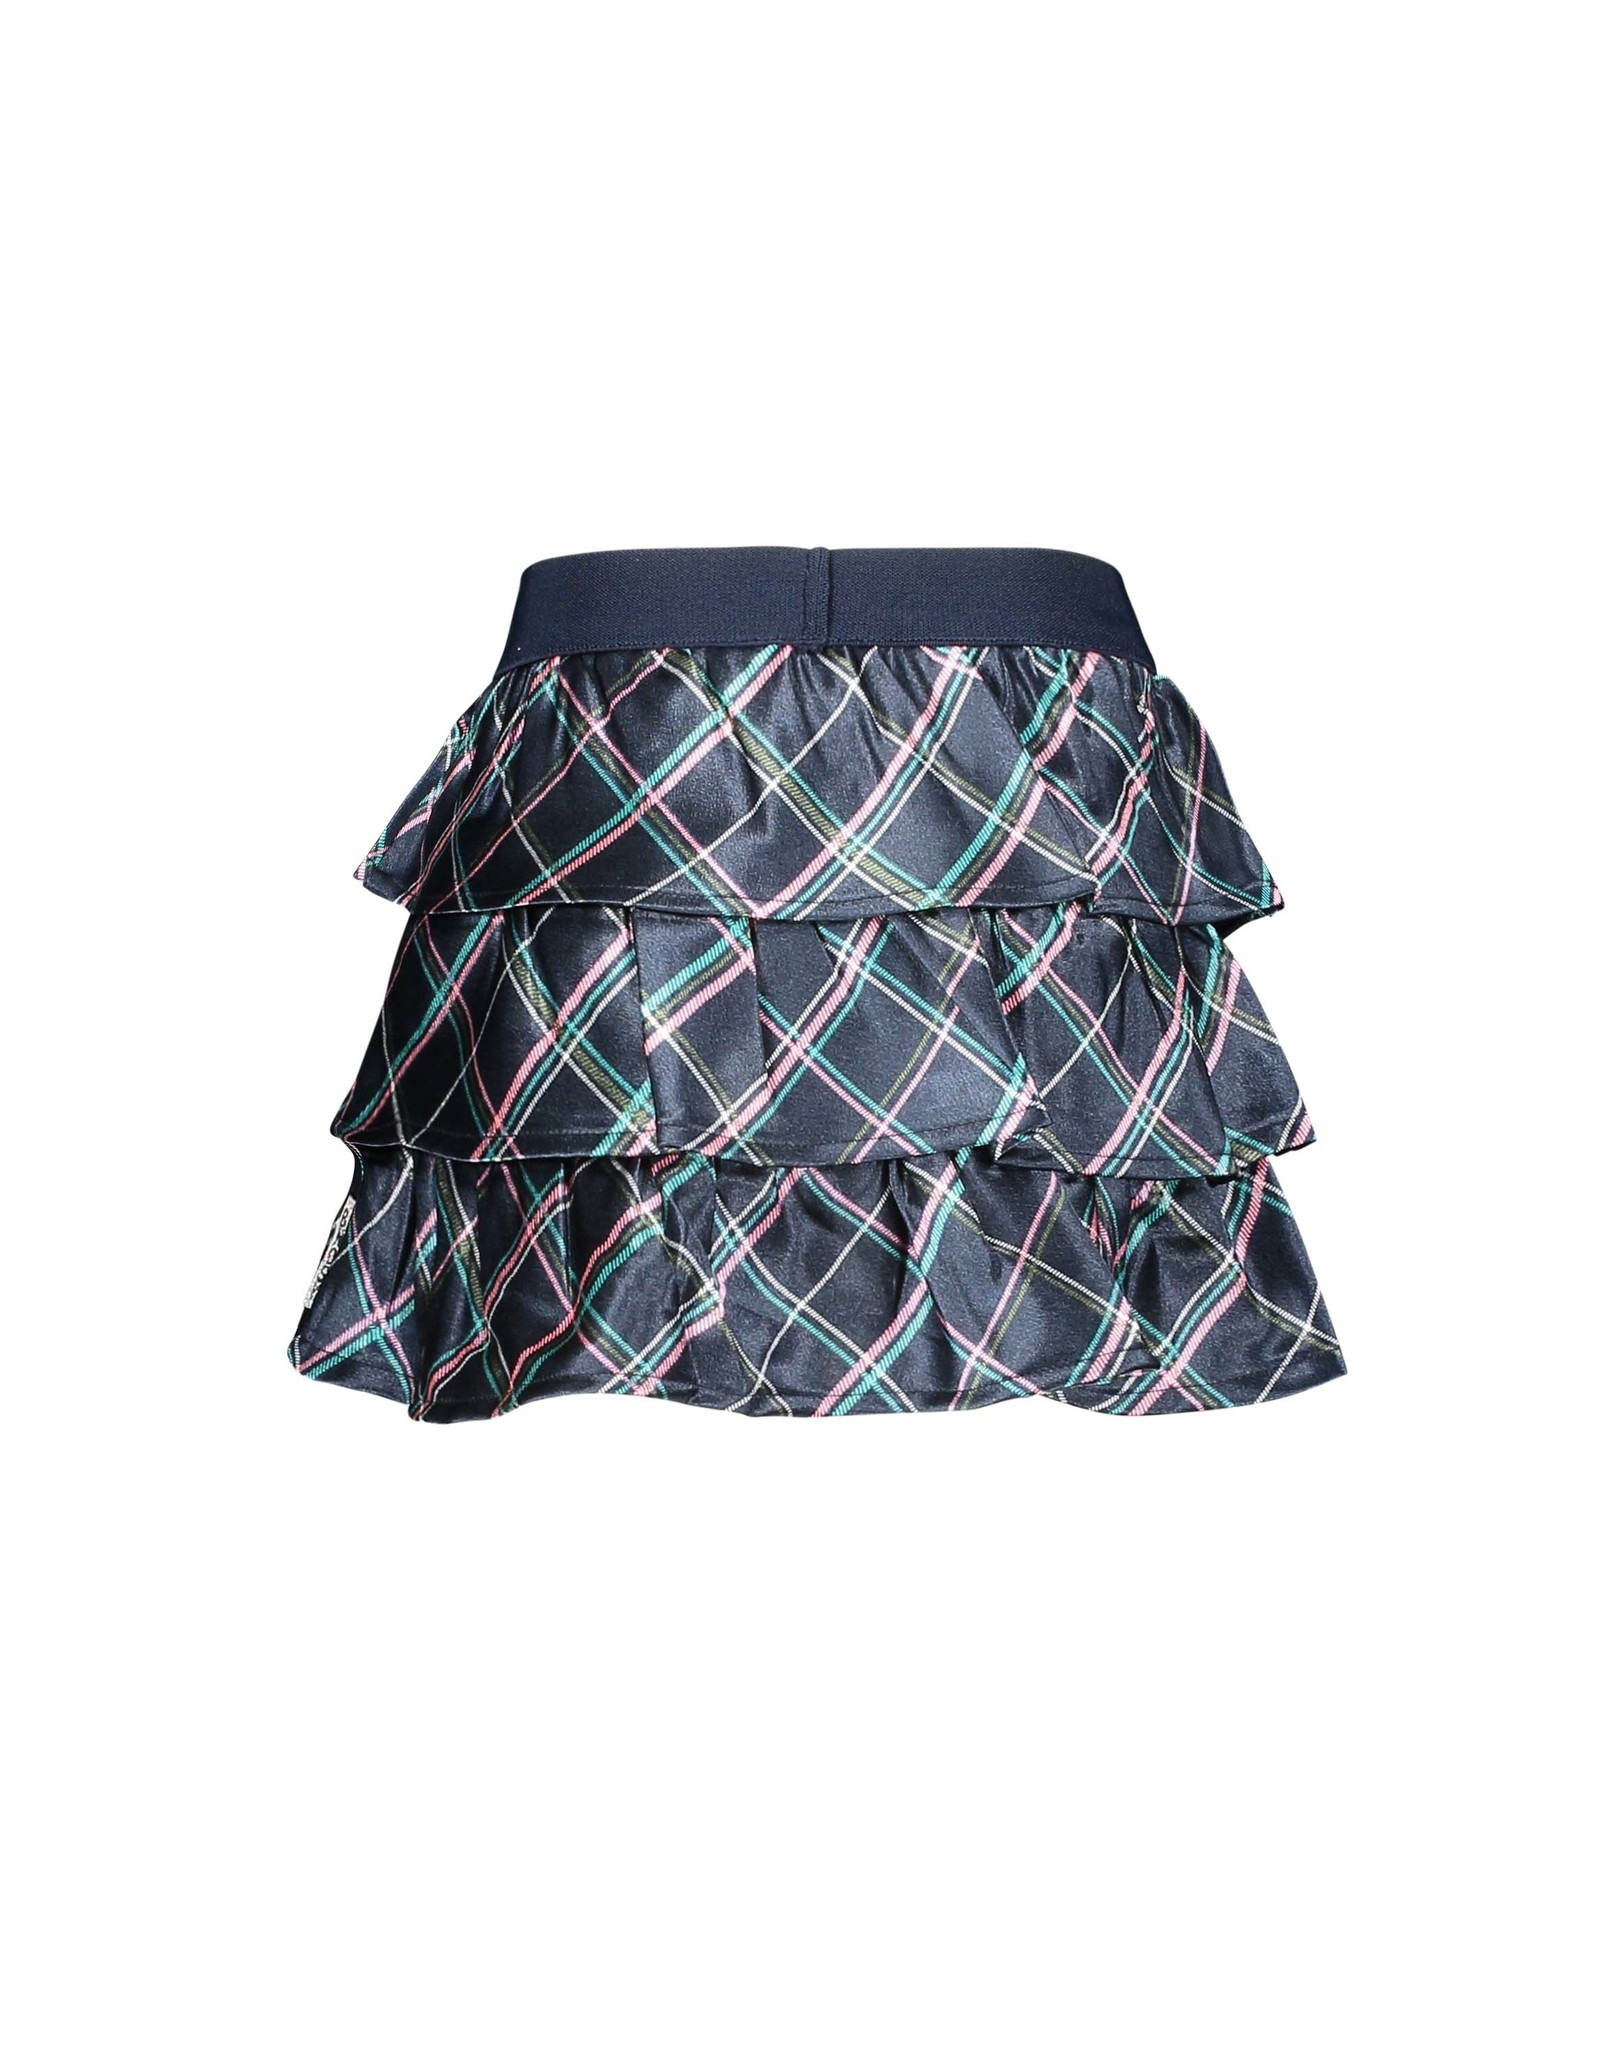 B-Nosy Girls layered skirt with check fabric used slanted, Check oxford blue